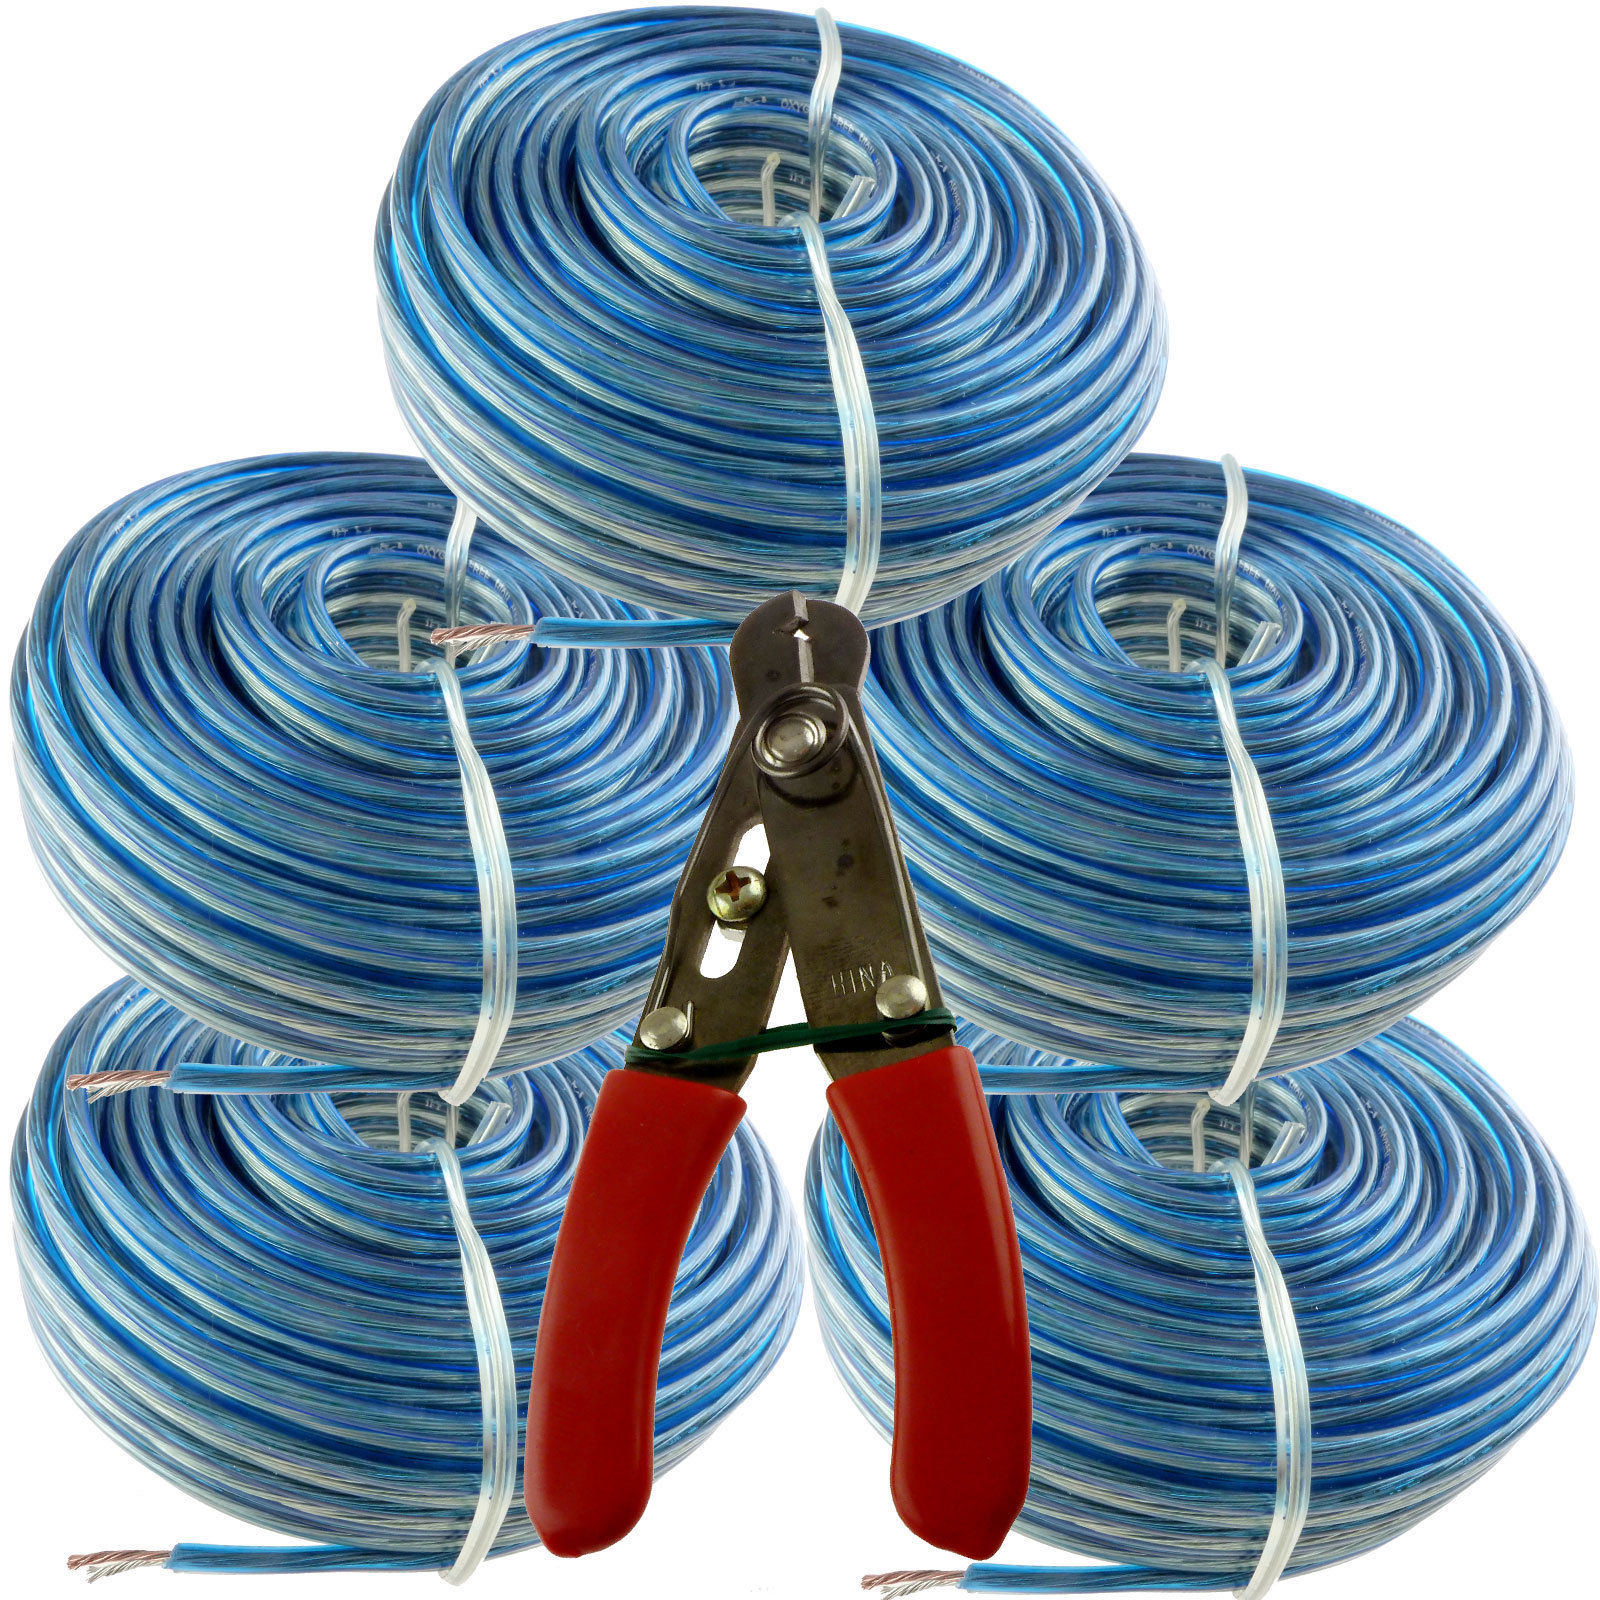 200 Feet 18 awg Blue Speaker Wire Cable ag and similar items